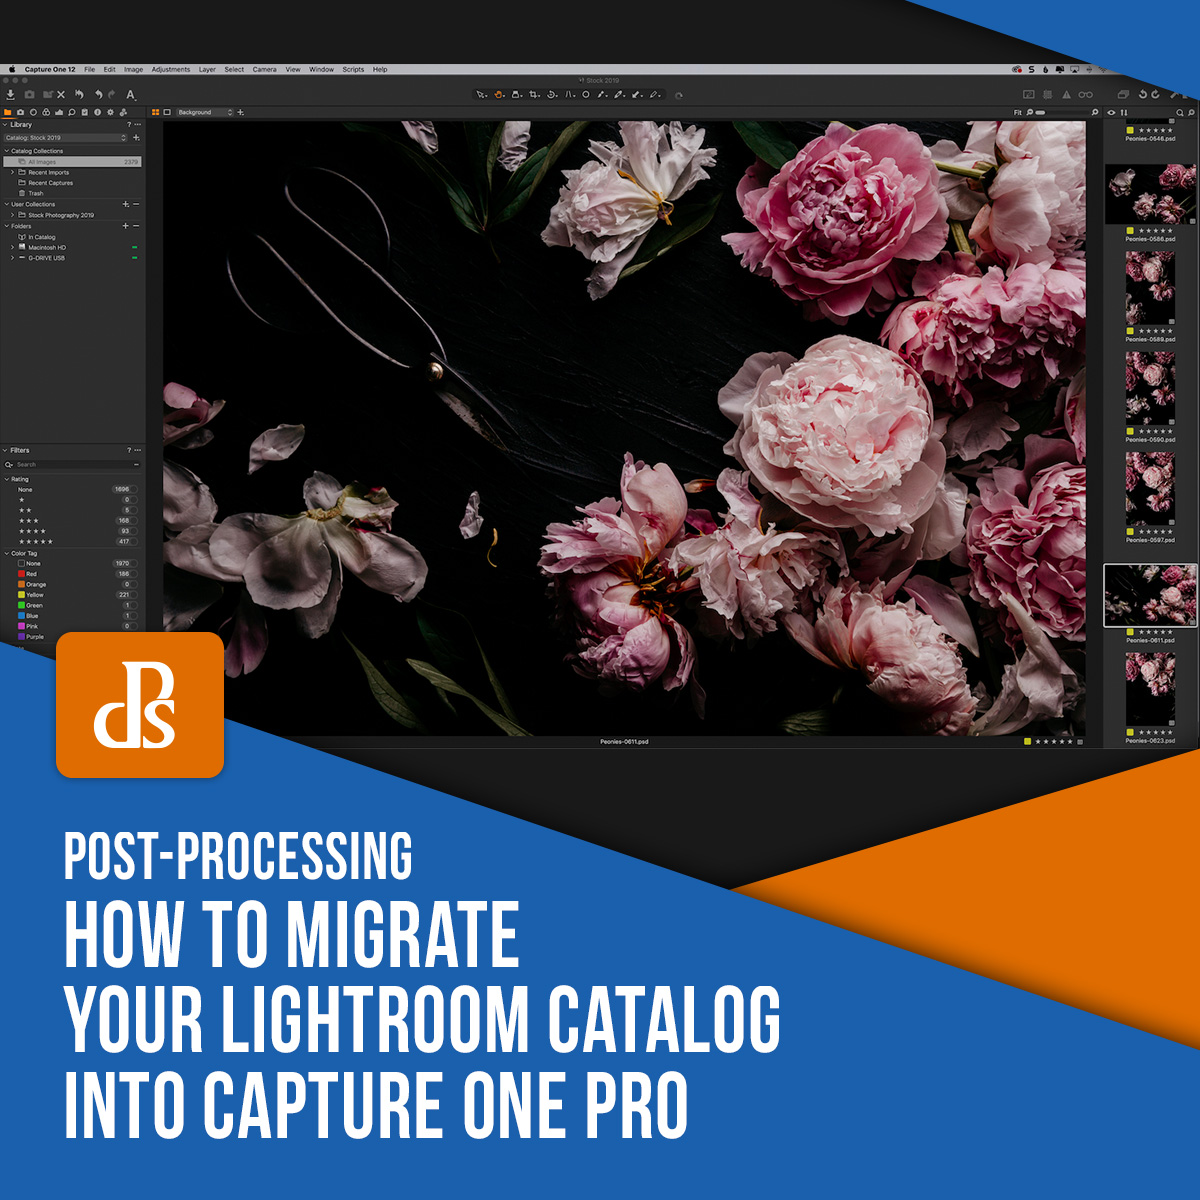 Migrate-Your-Lightroom-Catalog-into-Capture-One